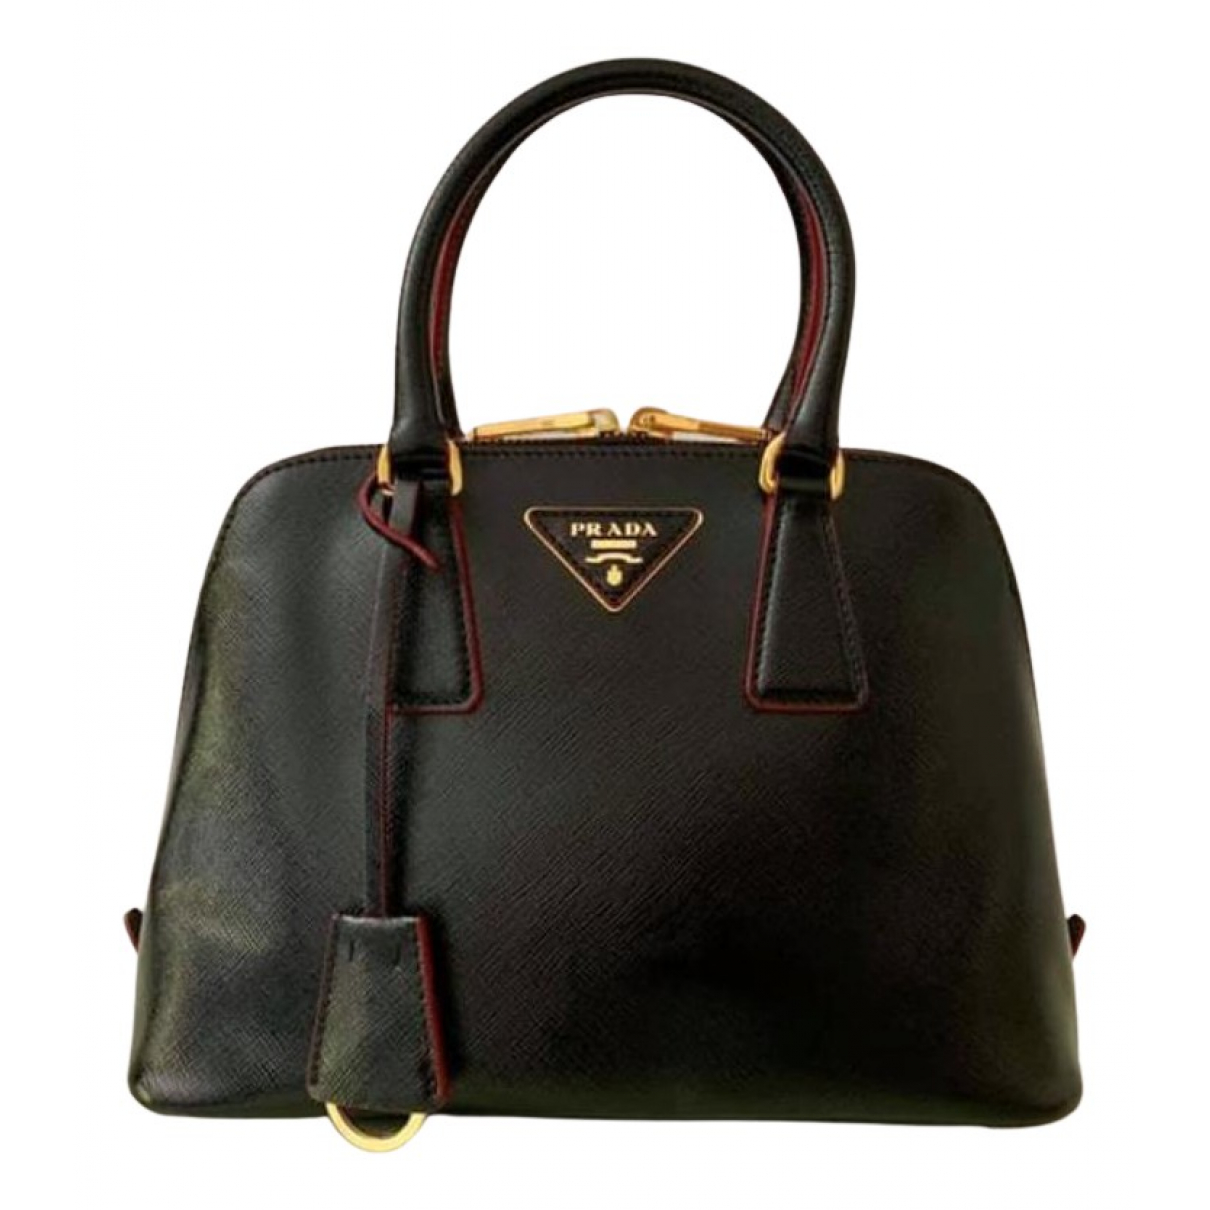 Prada Promenade Black Leather handbag for Women N